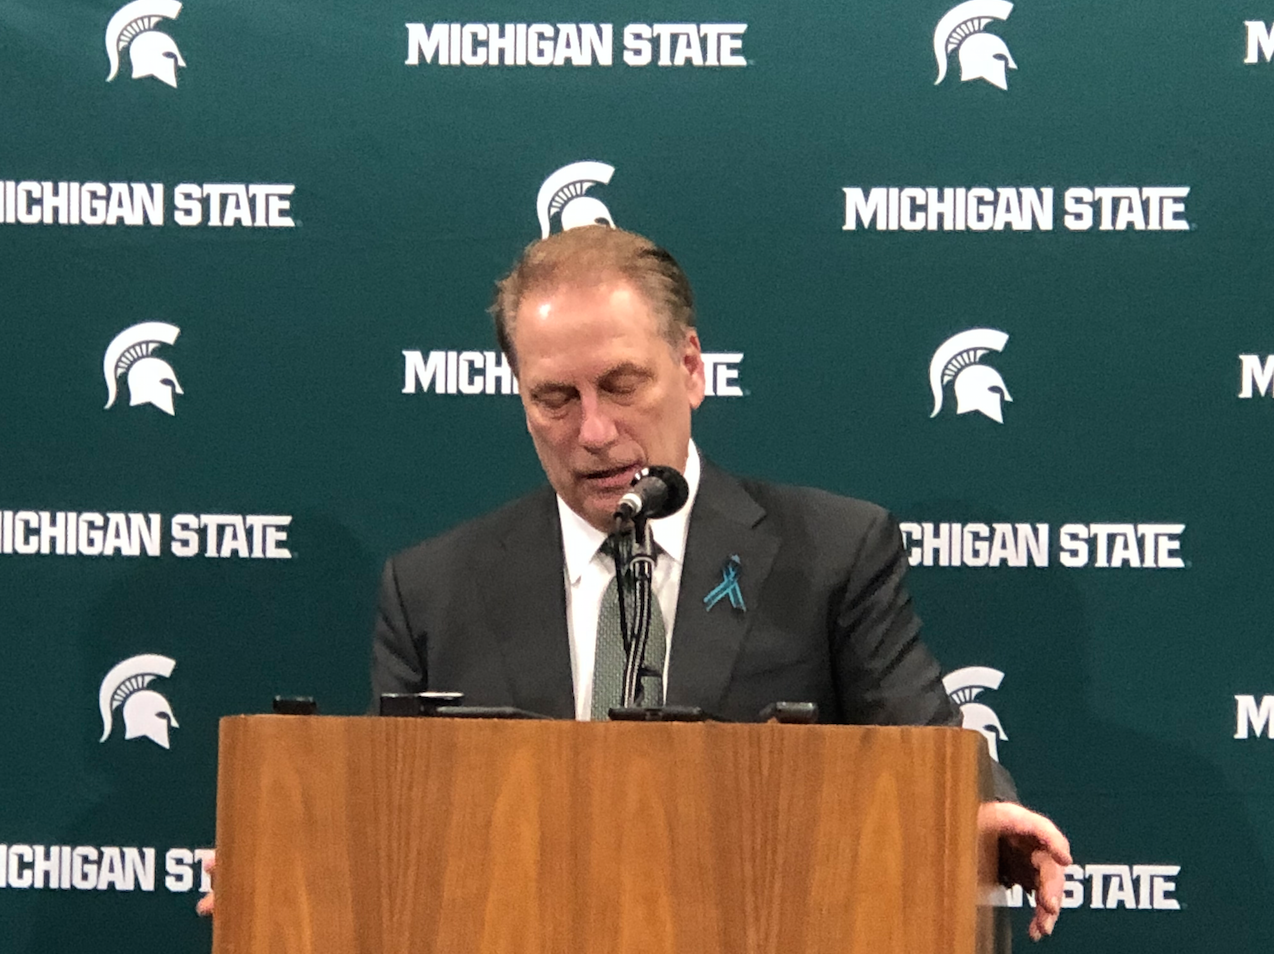 MSU men's basketball coach Tom Izzo addresses the media after Wednesday night's win over Penn State